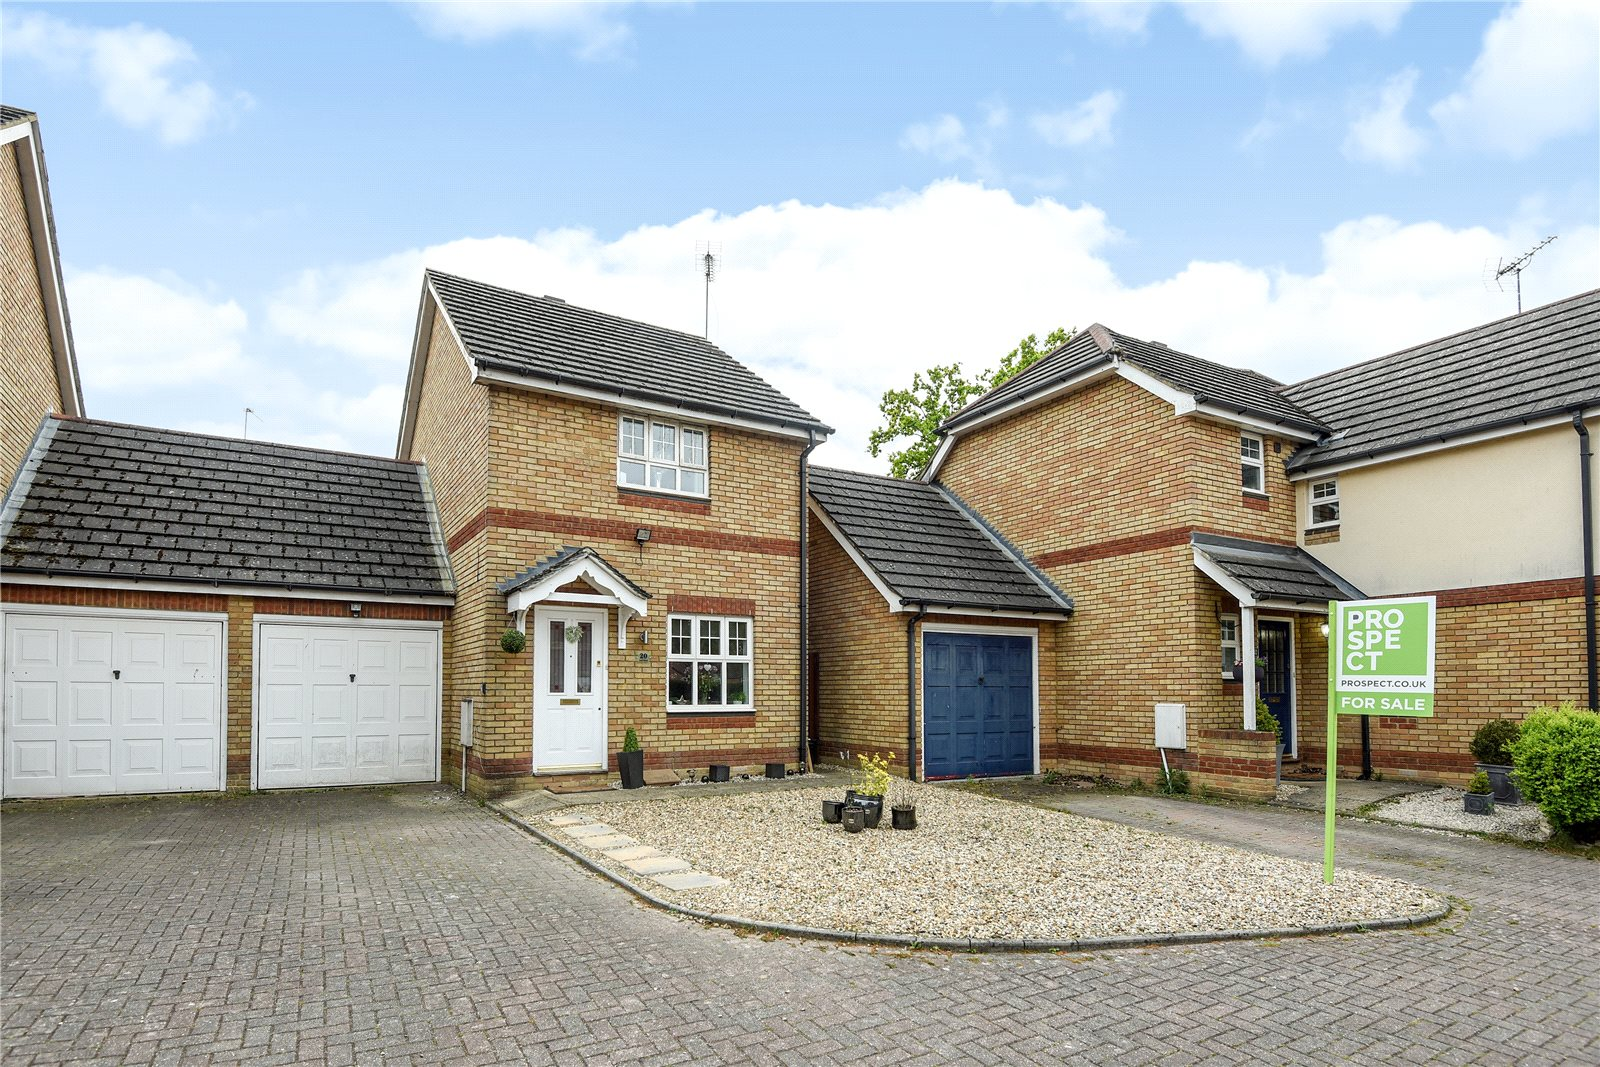 3 Bedrooms Semi Detached House for sale in Tyler Drive, Arborfield, Berkshire, RG2